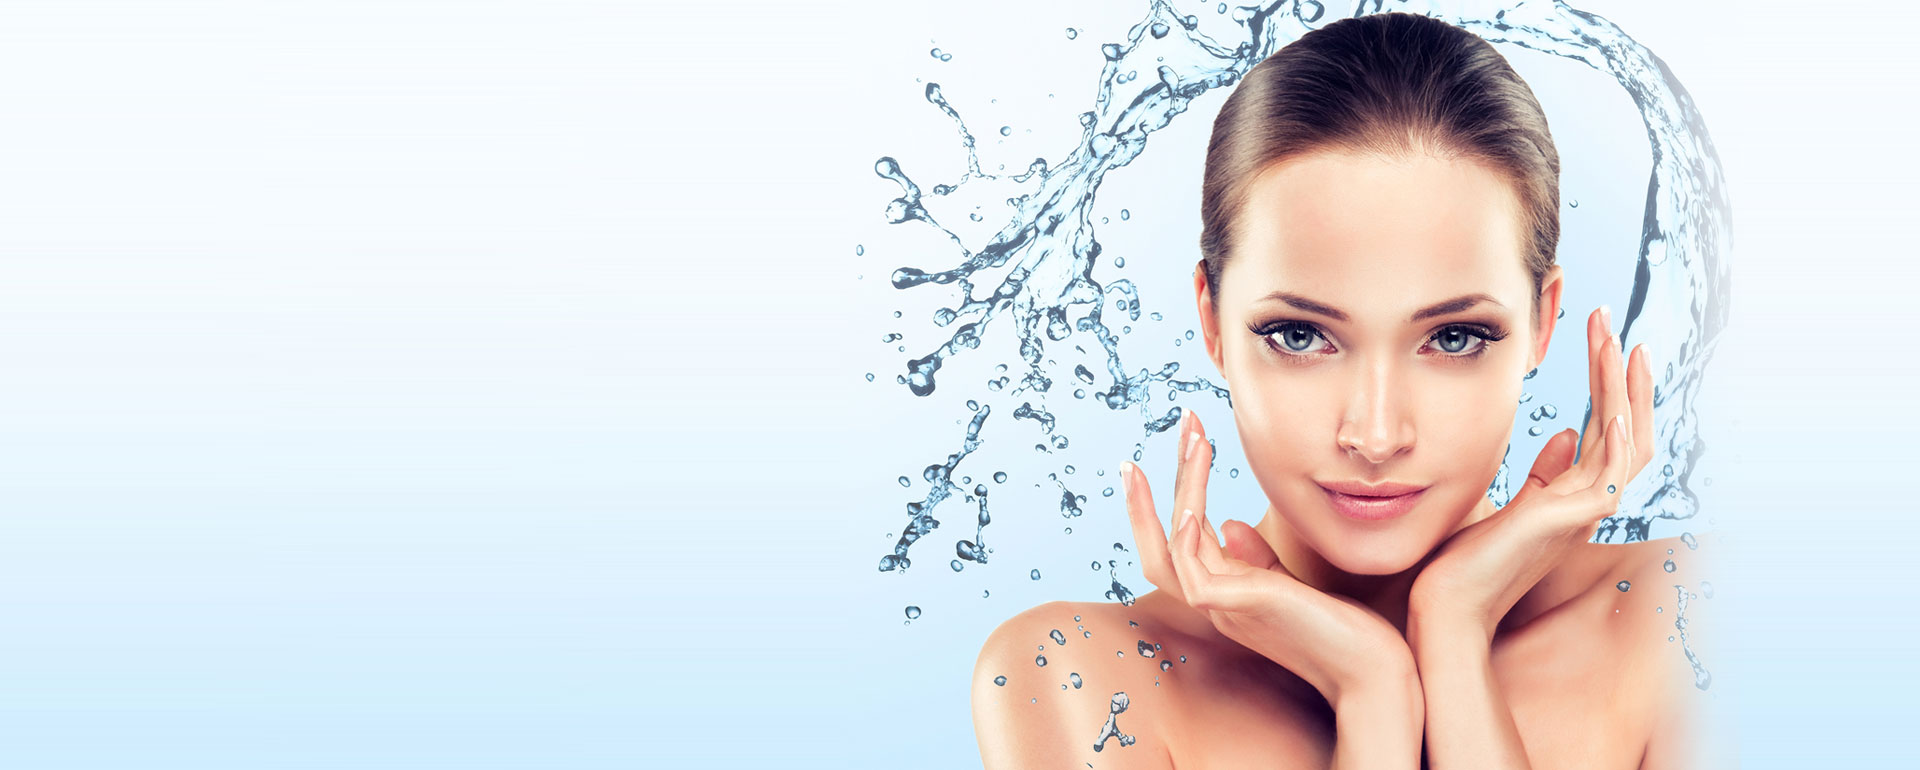 Refresh, Rejuvenate Today With Our Facial Fillers